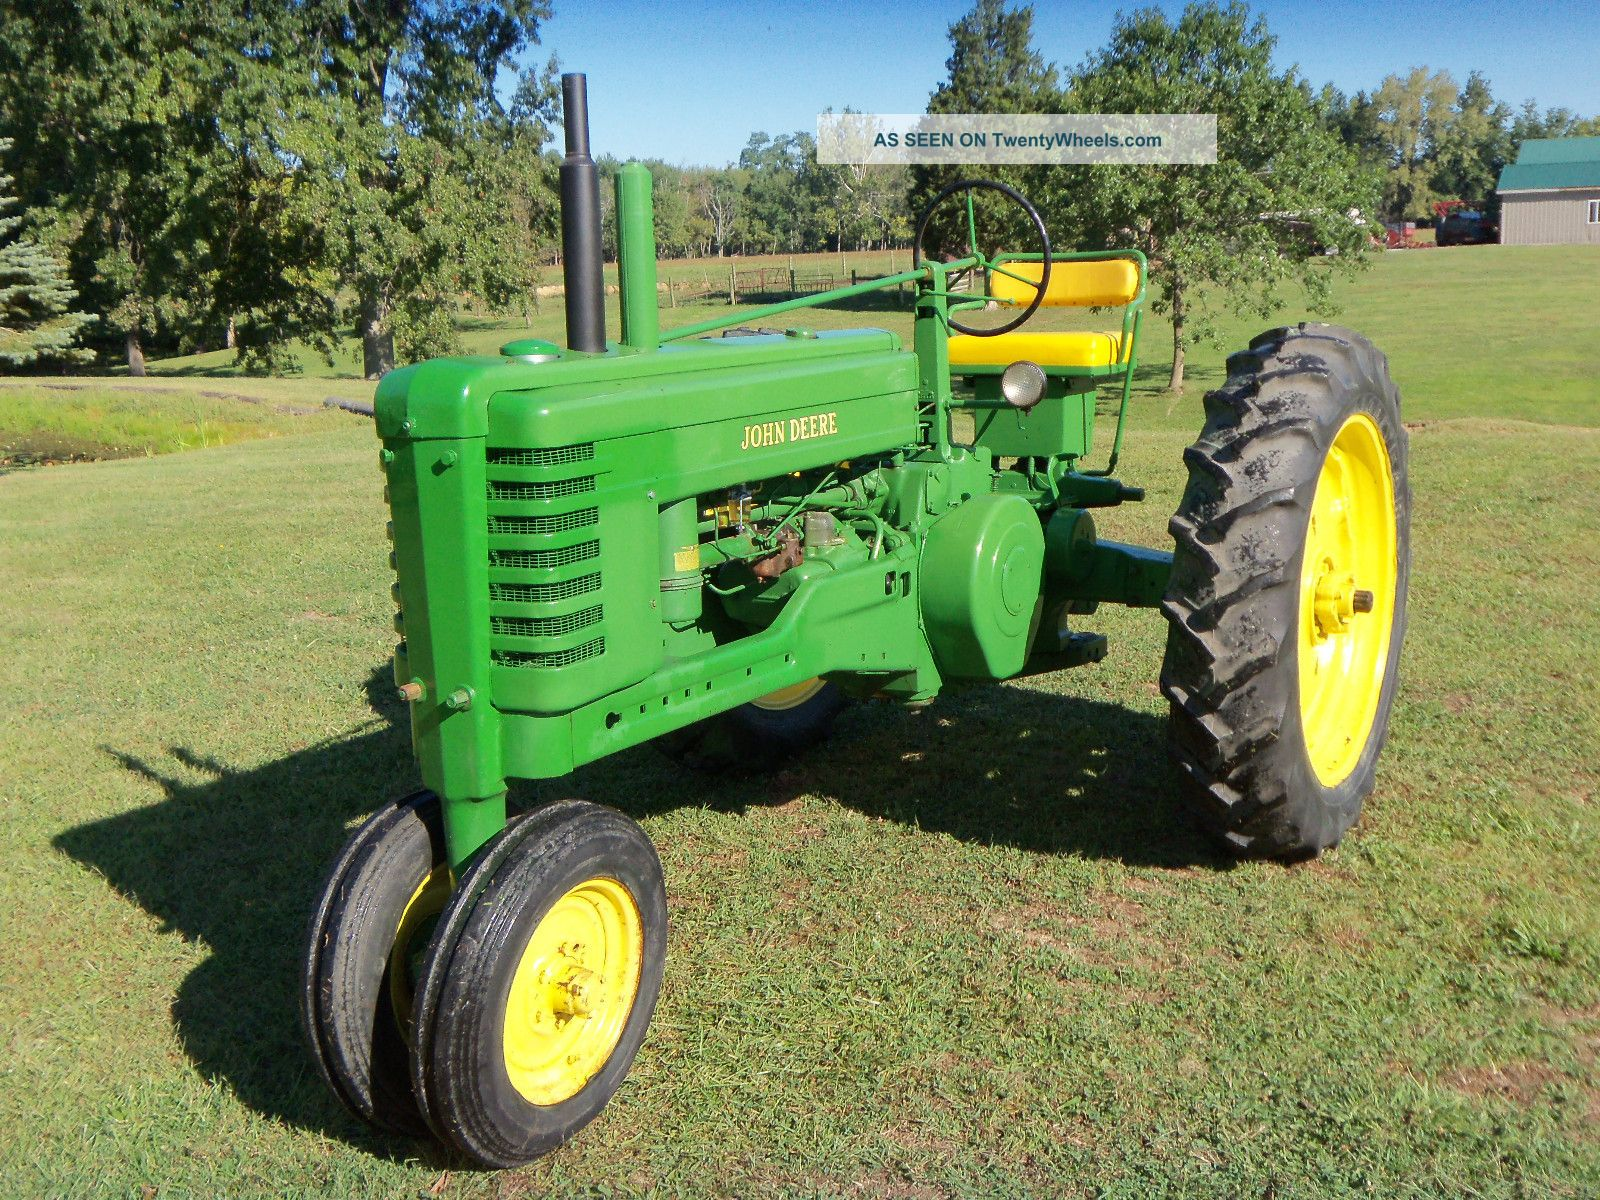 John Deere Model M For Sale On Craigslist Autos Post